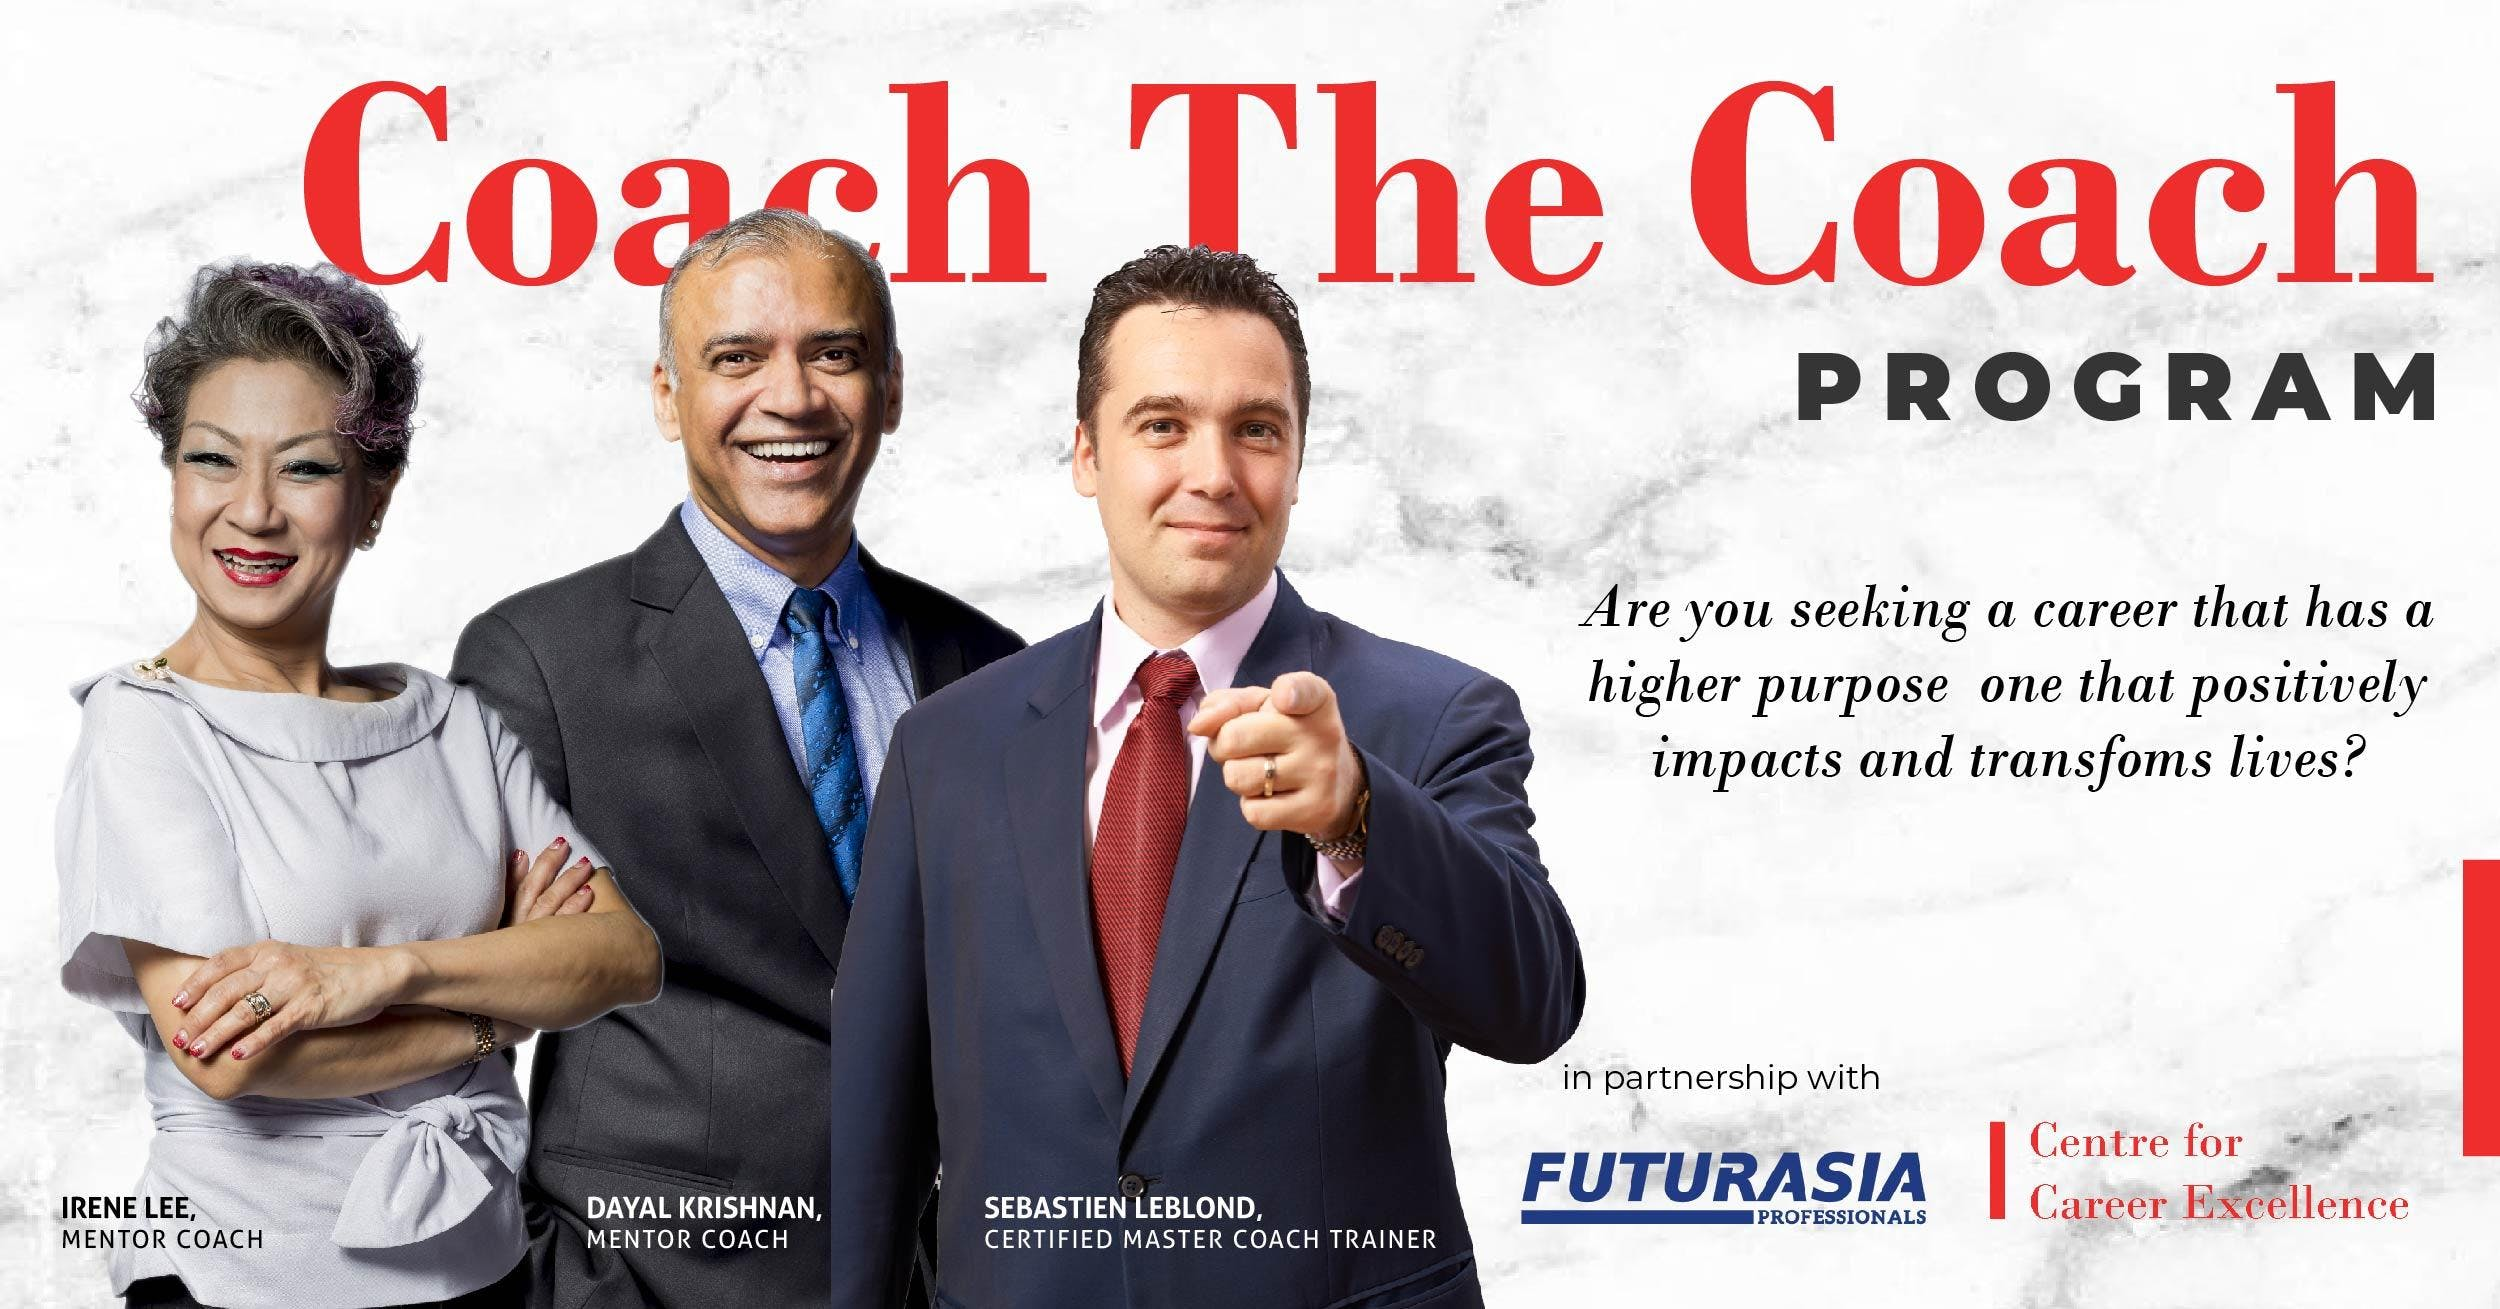 Preview Coach The Coach Career Coaching Program Midland House